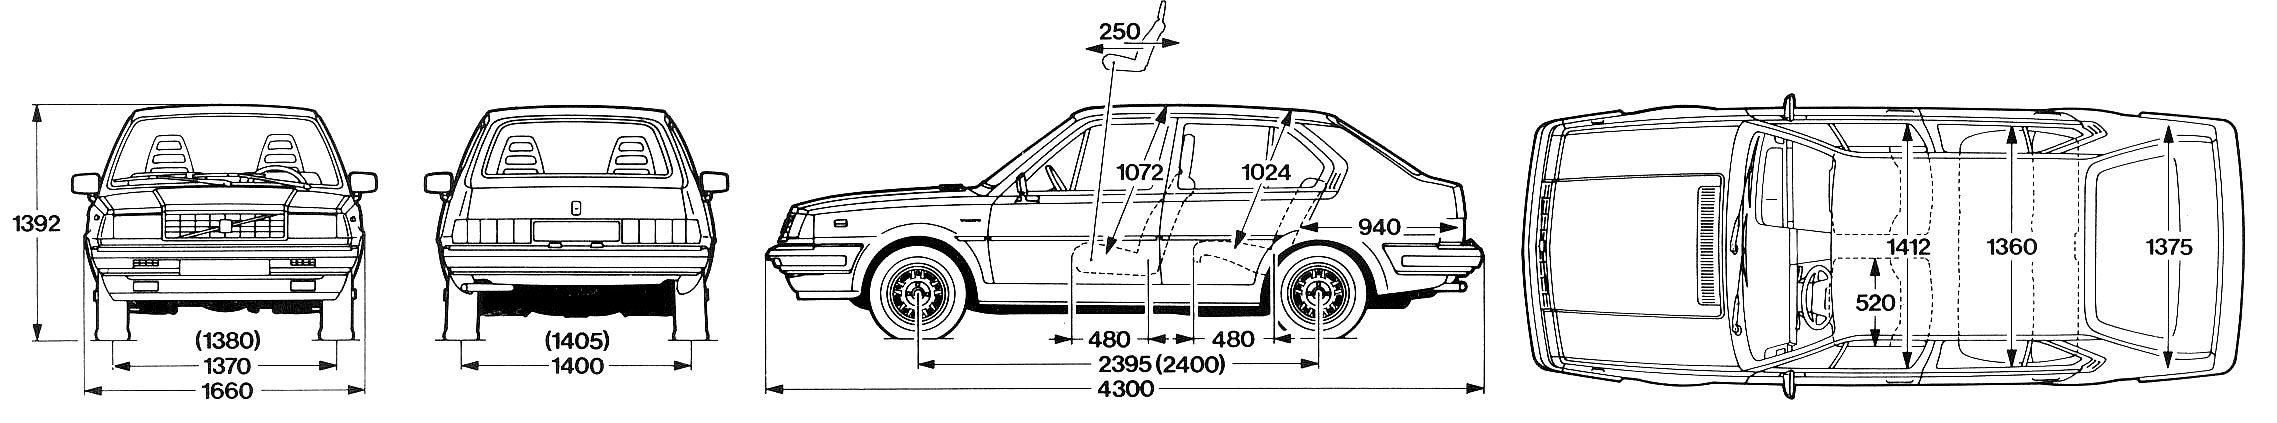 Volvo 345 blueprint